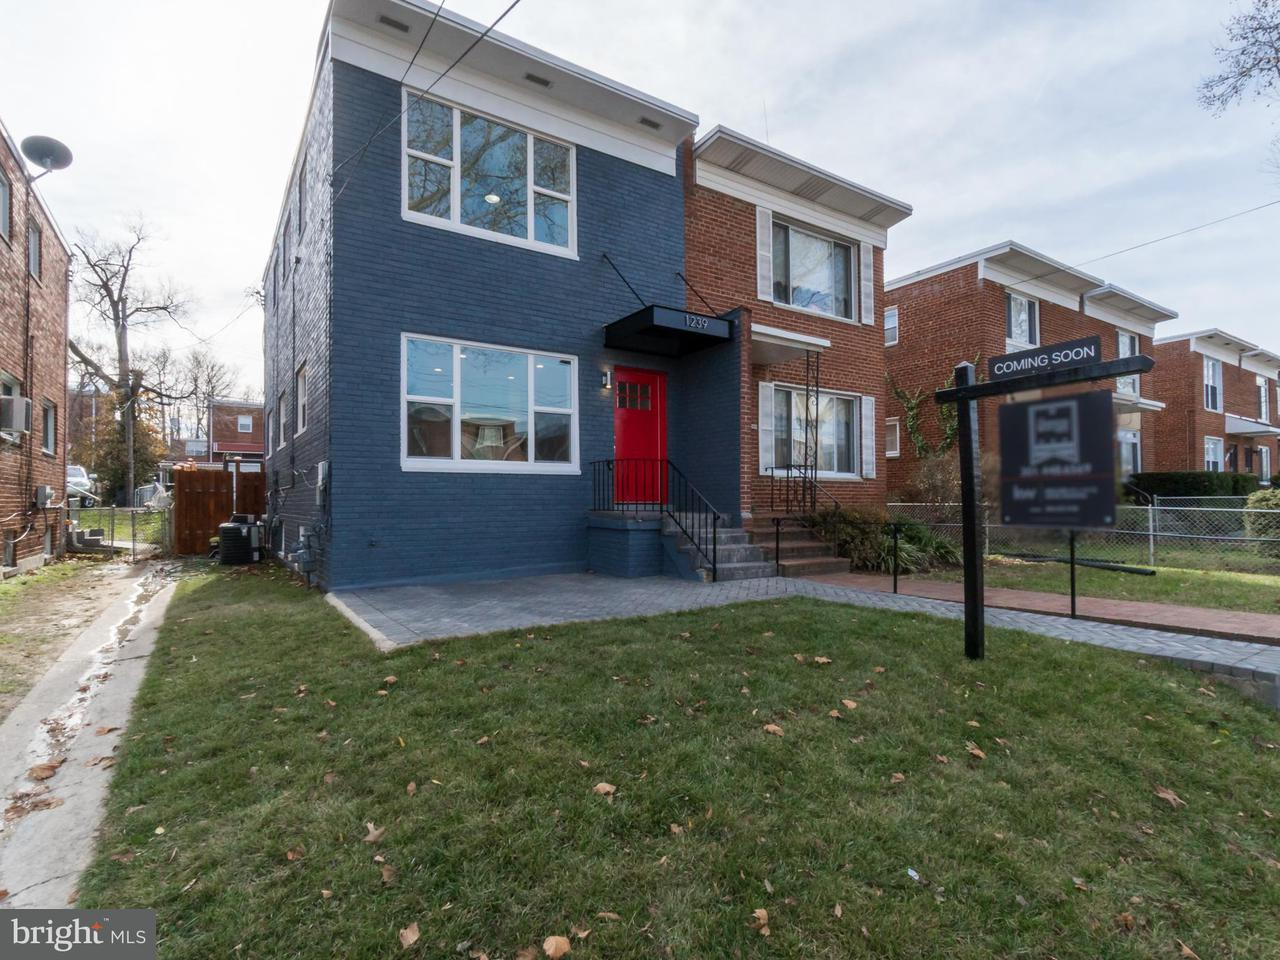 Townhouse for Sale at 1239 Emerson St Ne 1239 Emerson St Ne Washington, District Of Columbia 20017 United States